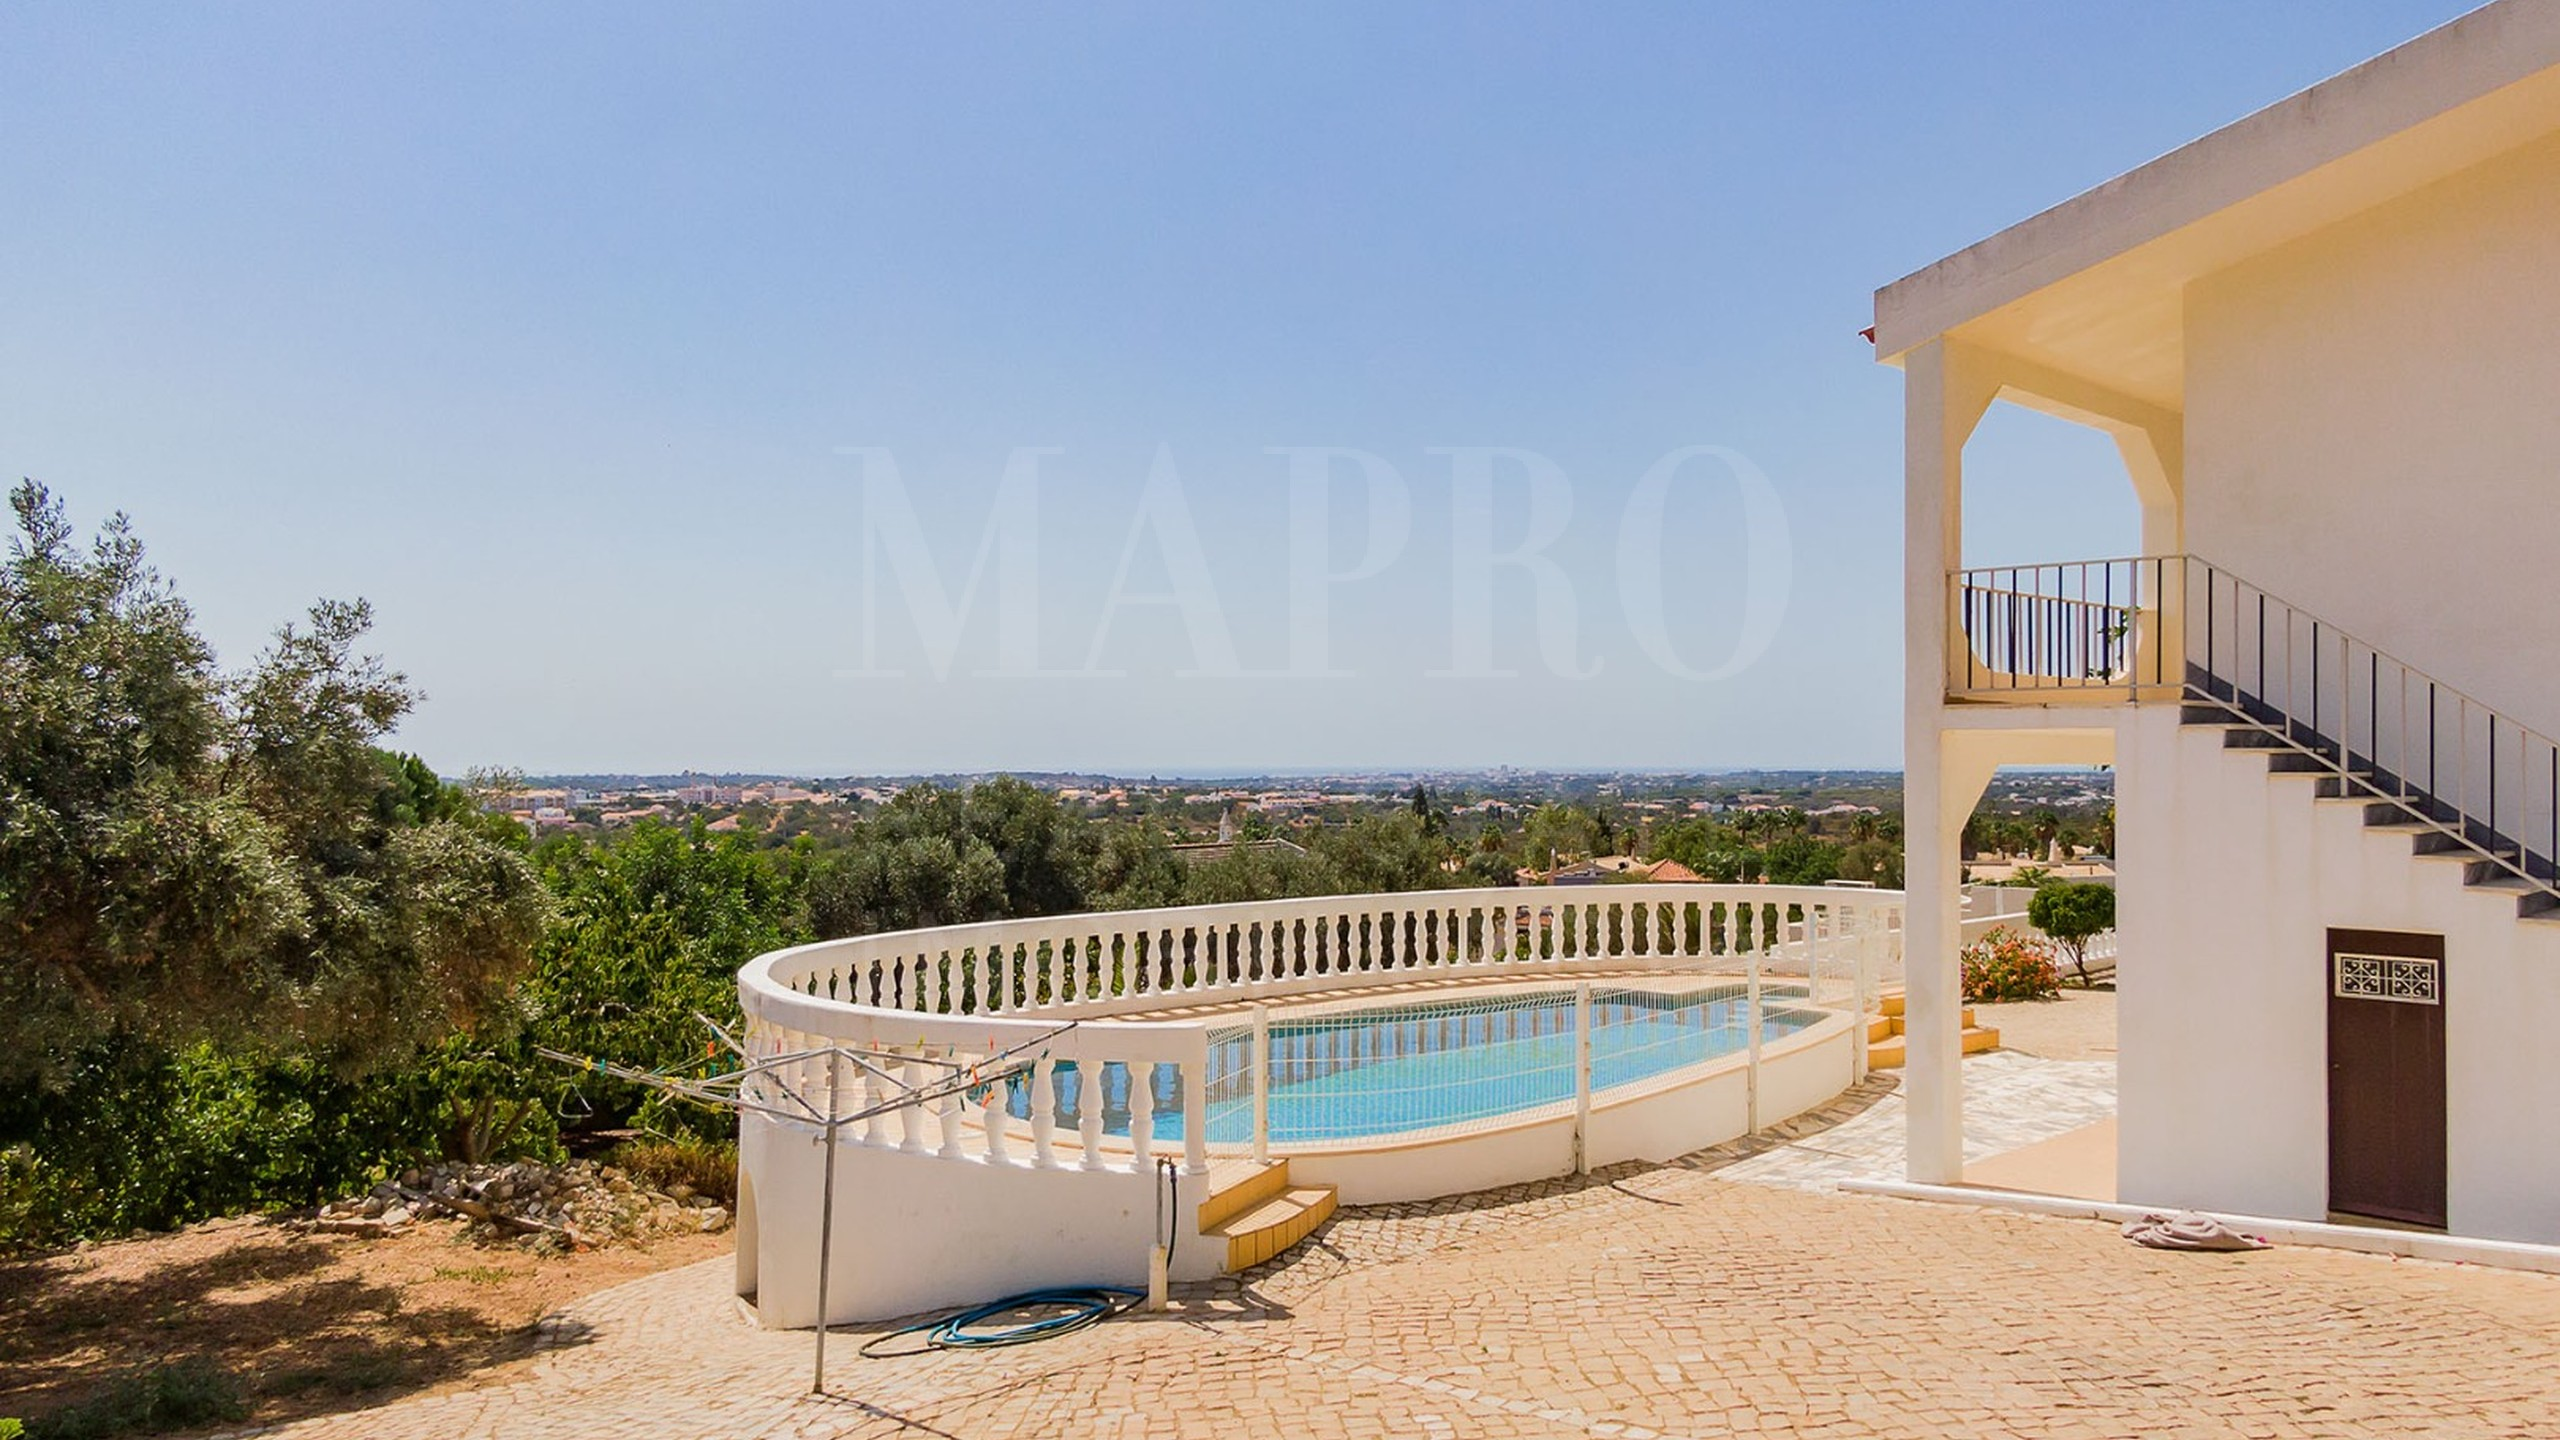 Villa with swimming pool for sale in Algarve